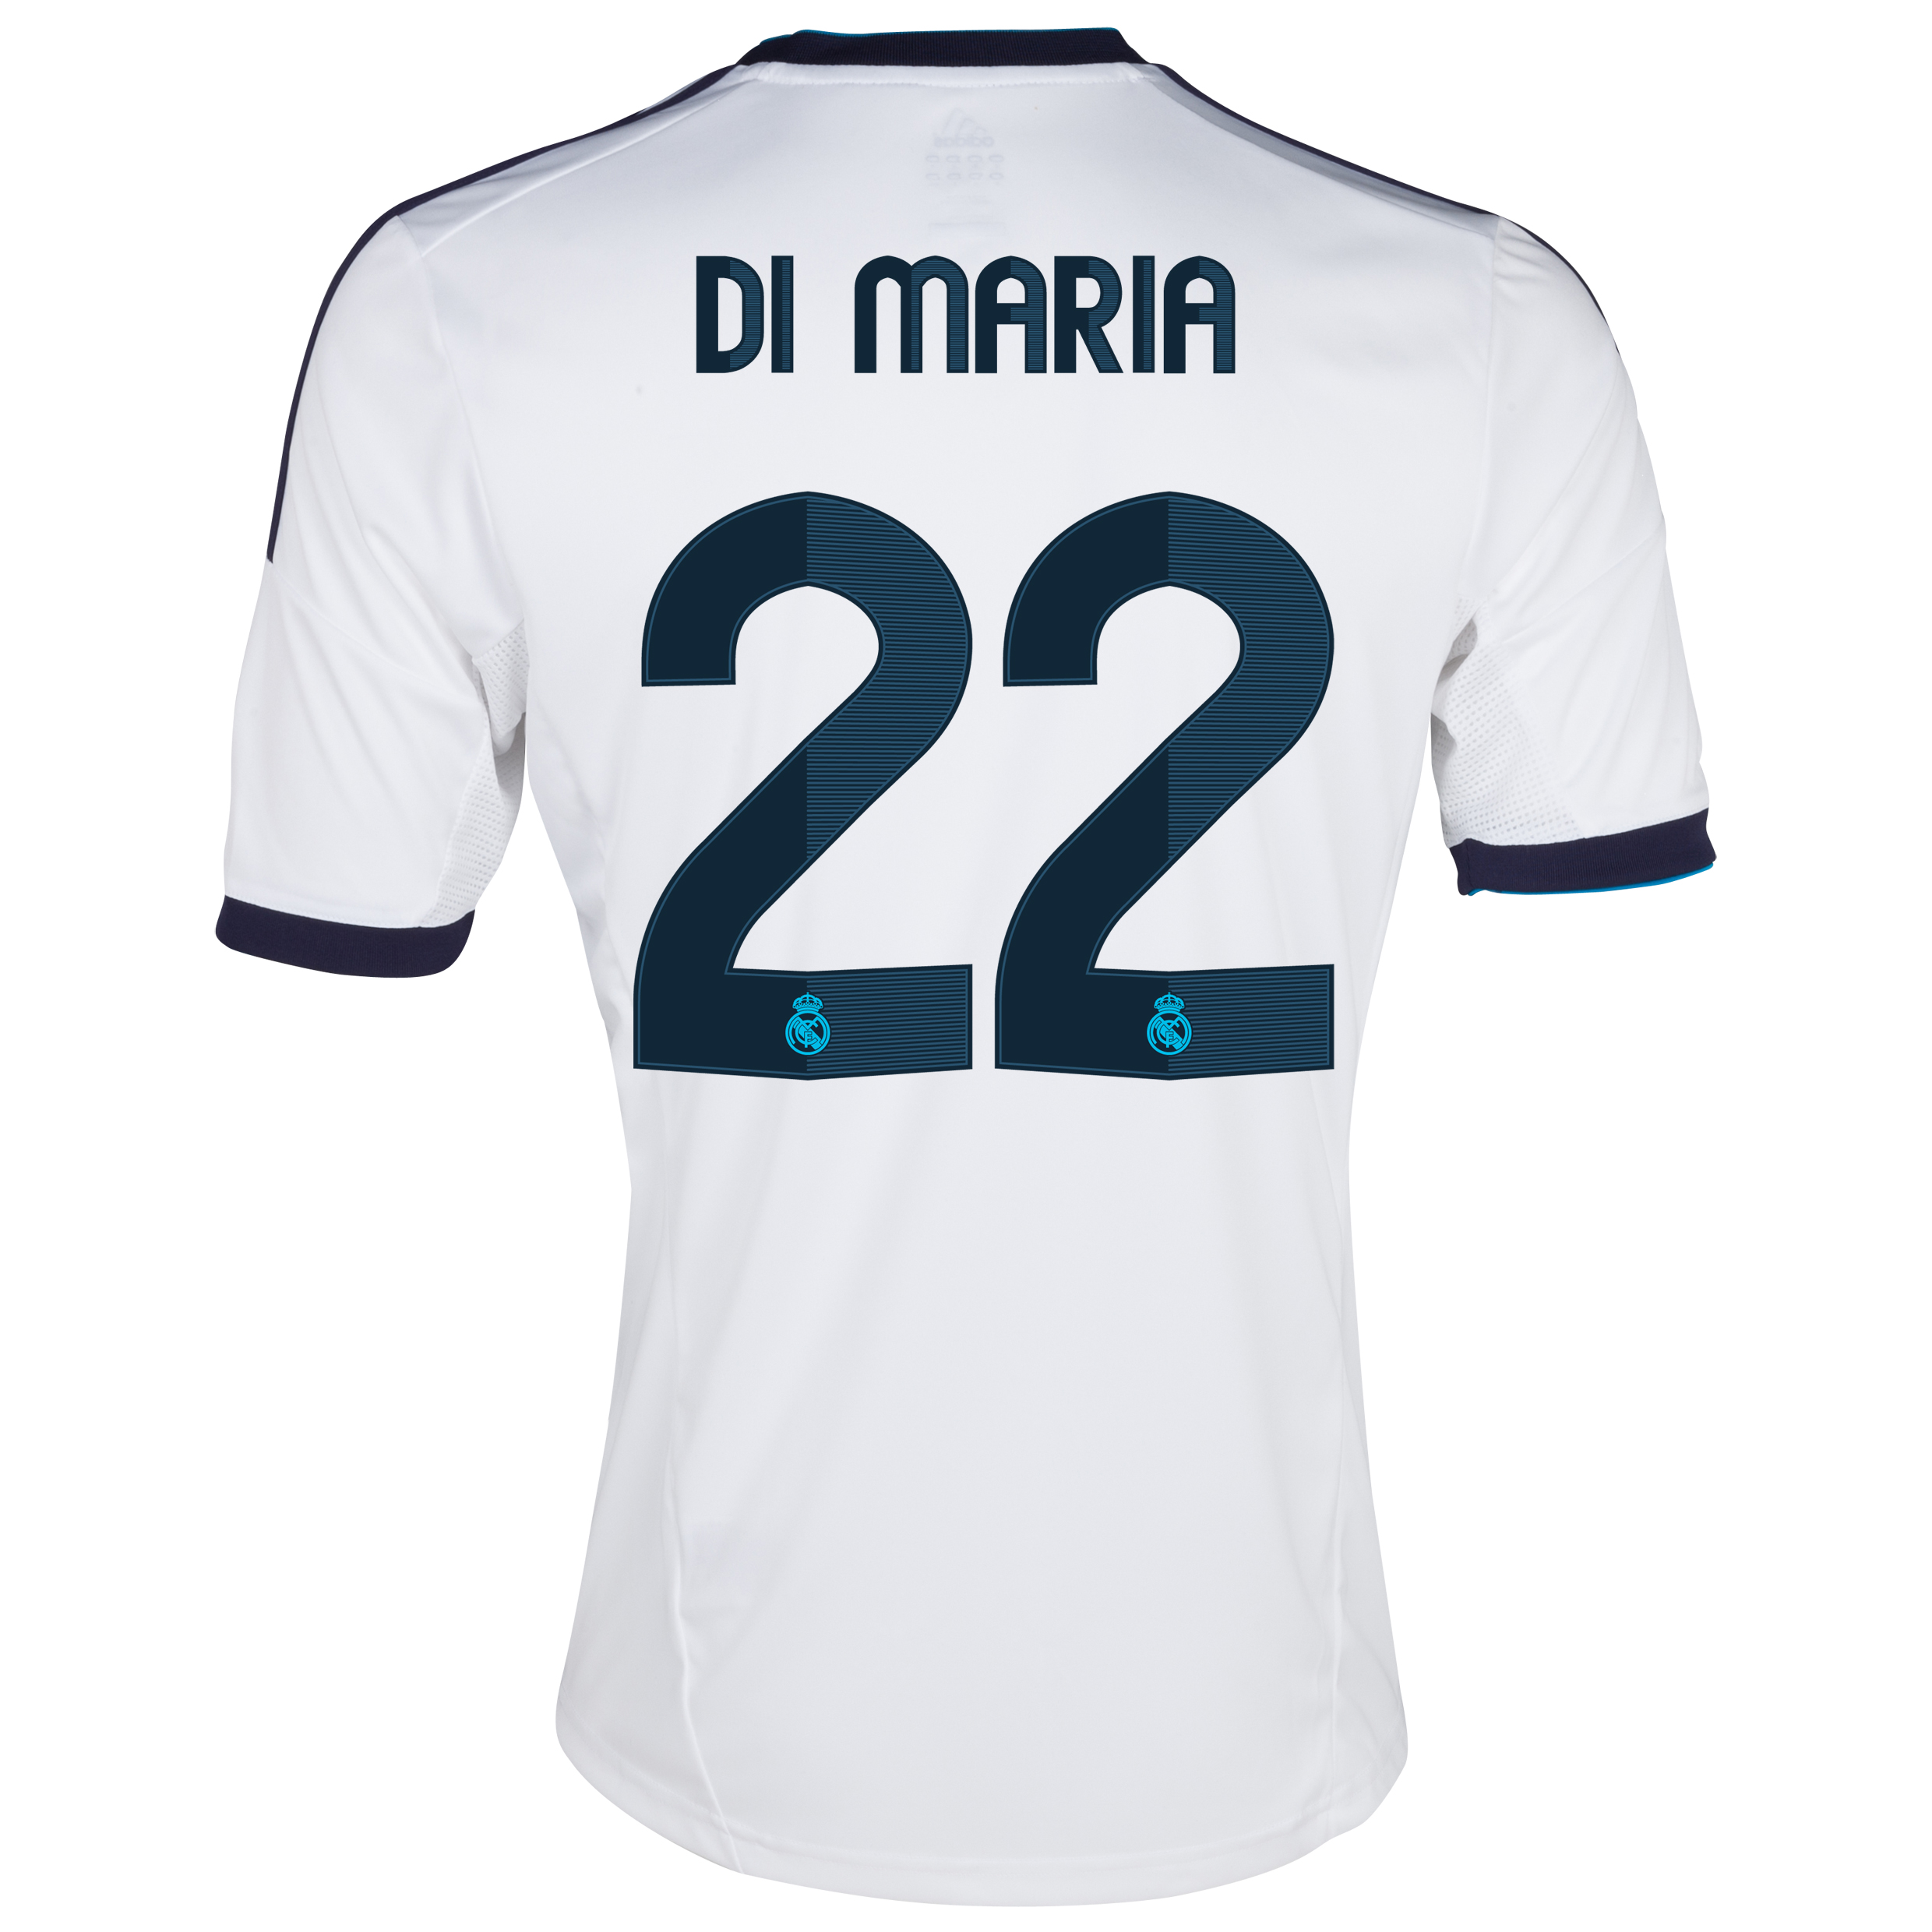 Real Madrid Home Shirt 2012/13 - Youths with Di Mara 22 printing